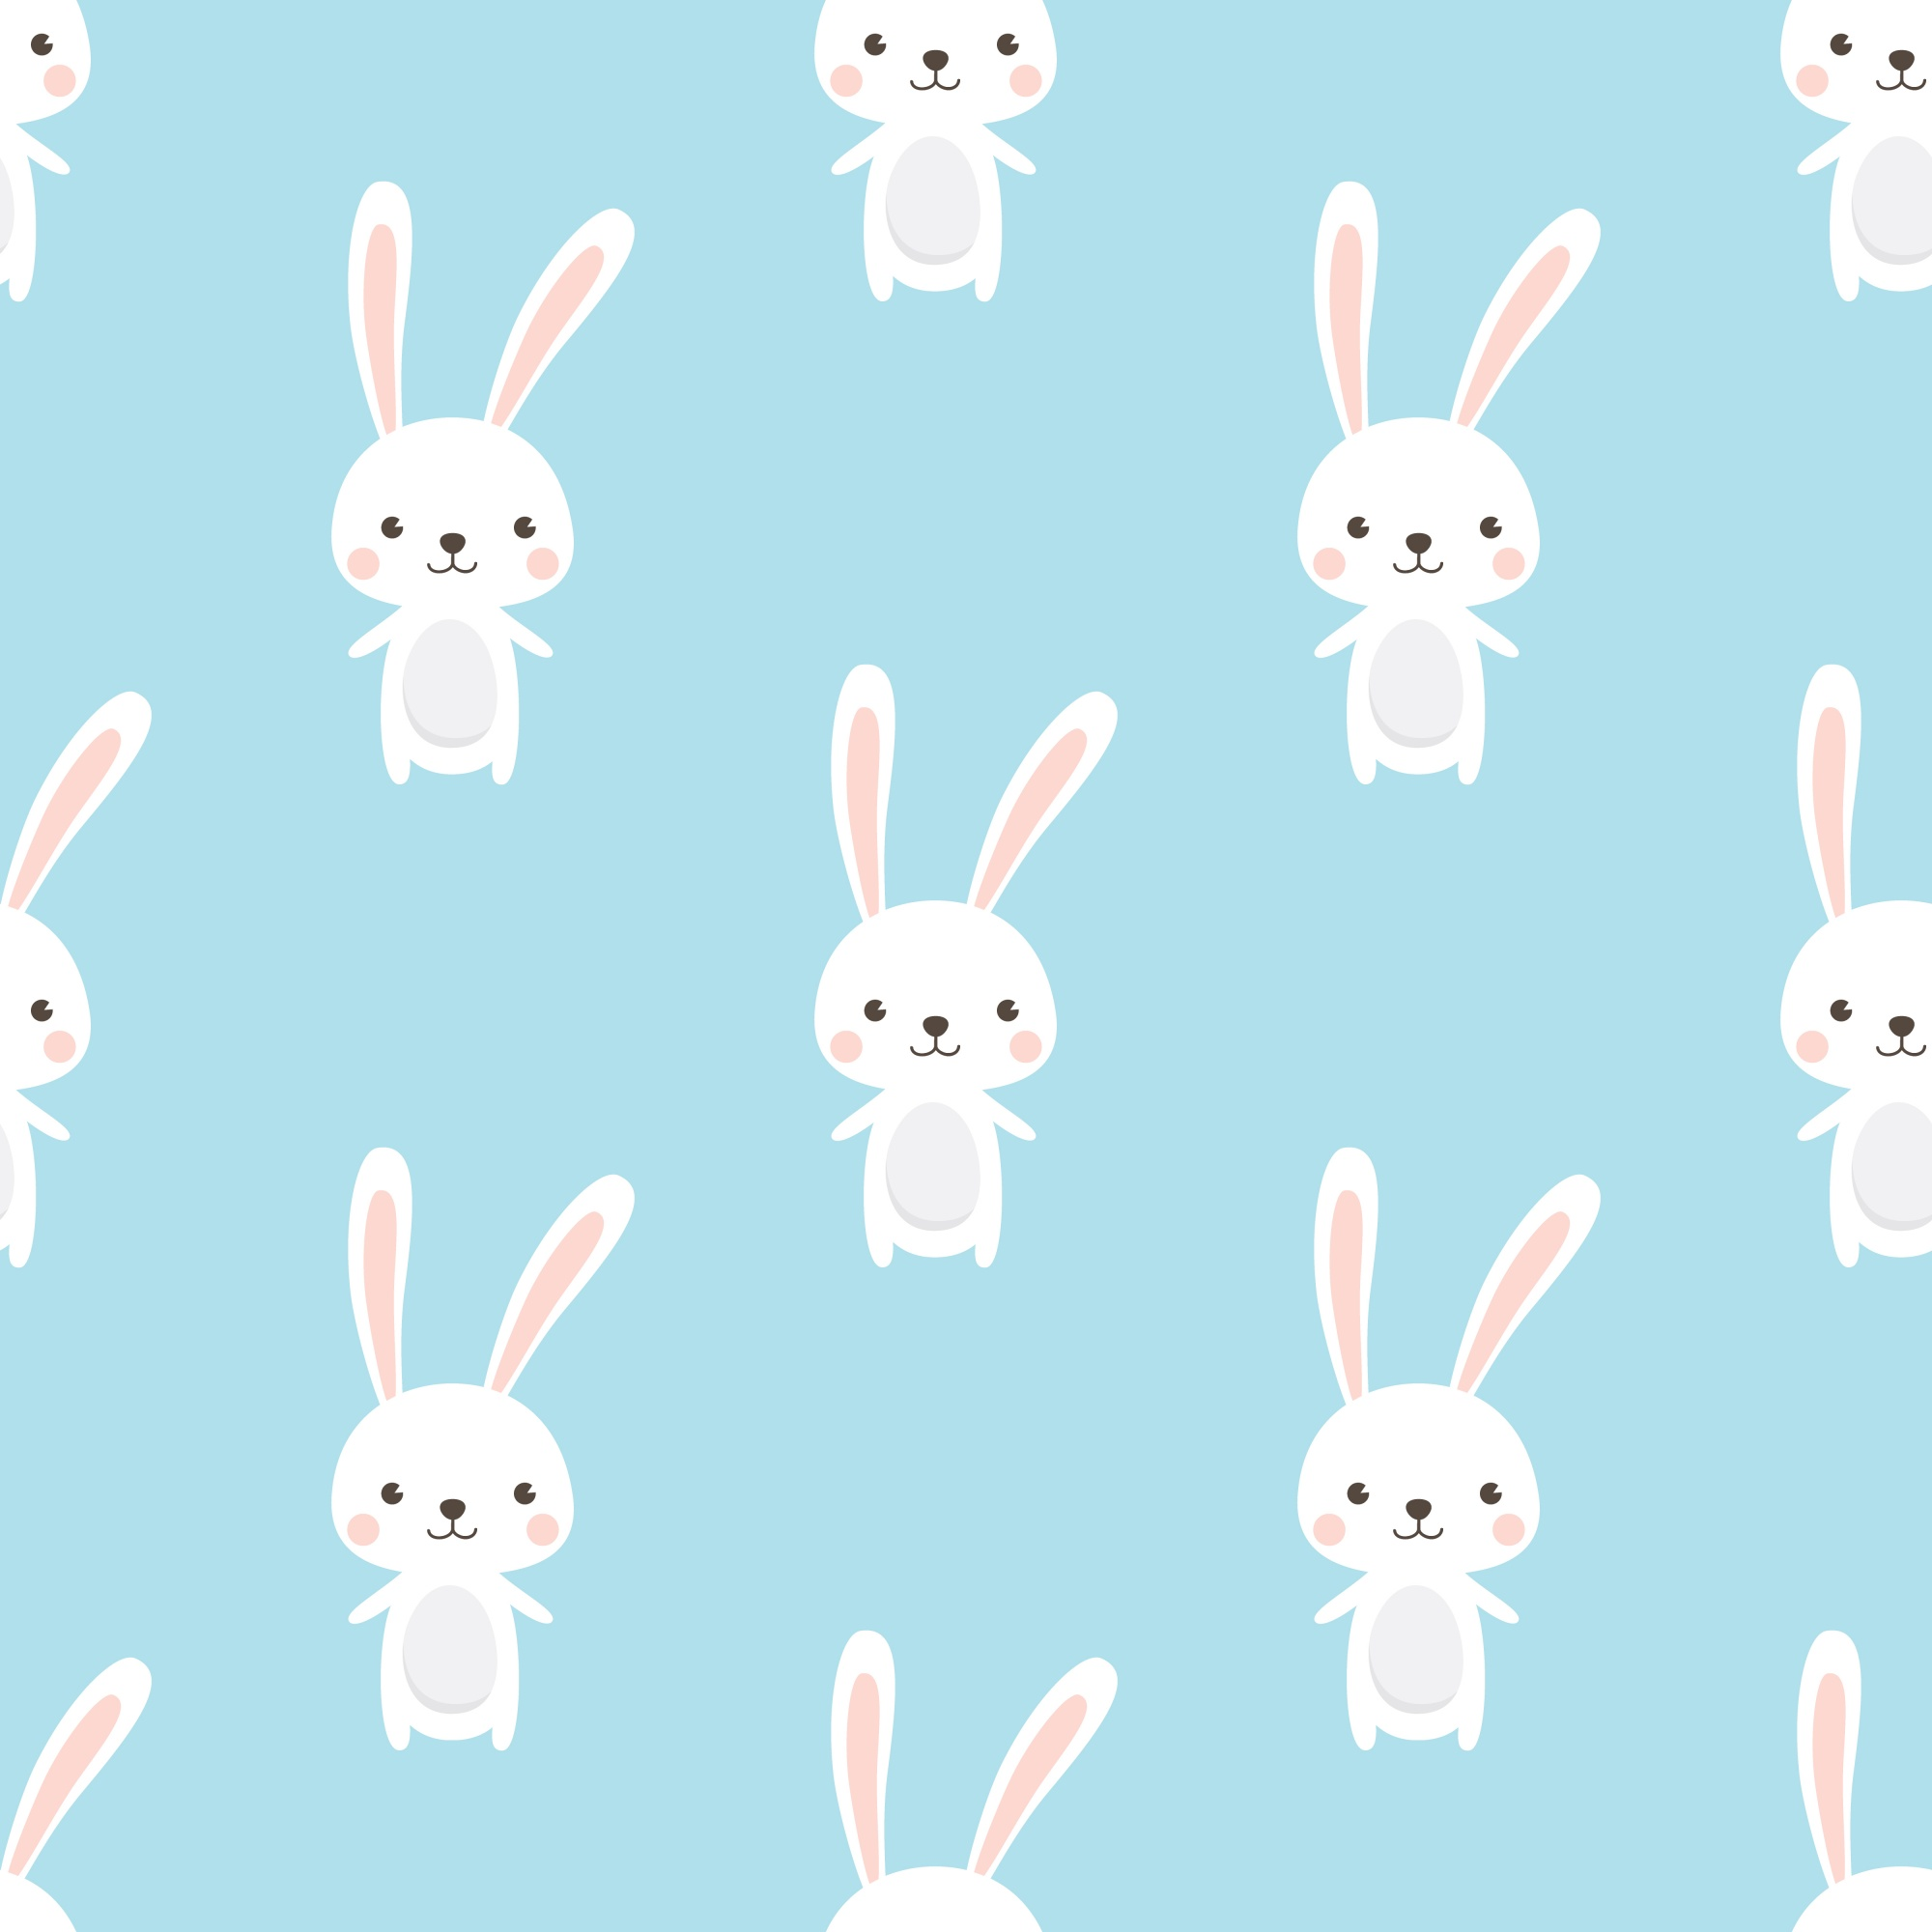 Cute Rabbit character Seamless pattern on sky blue background